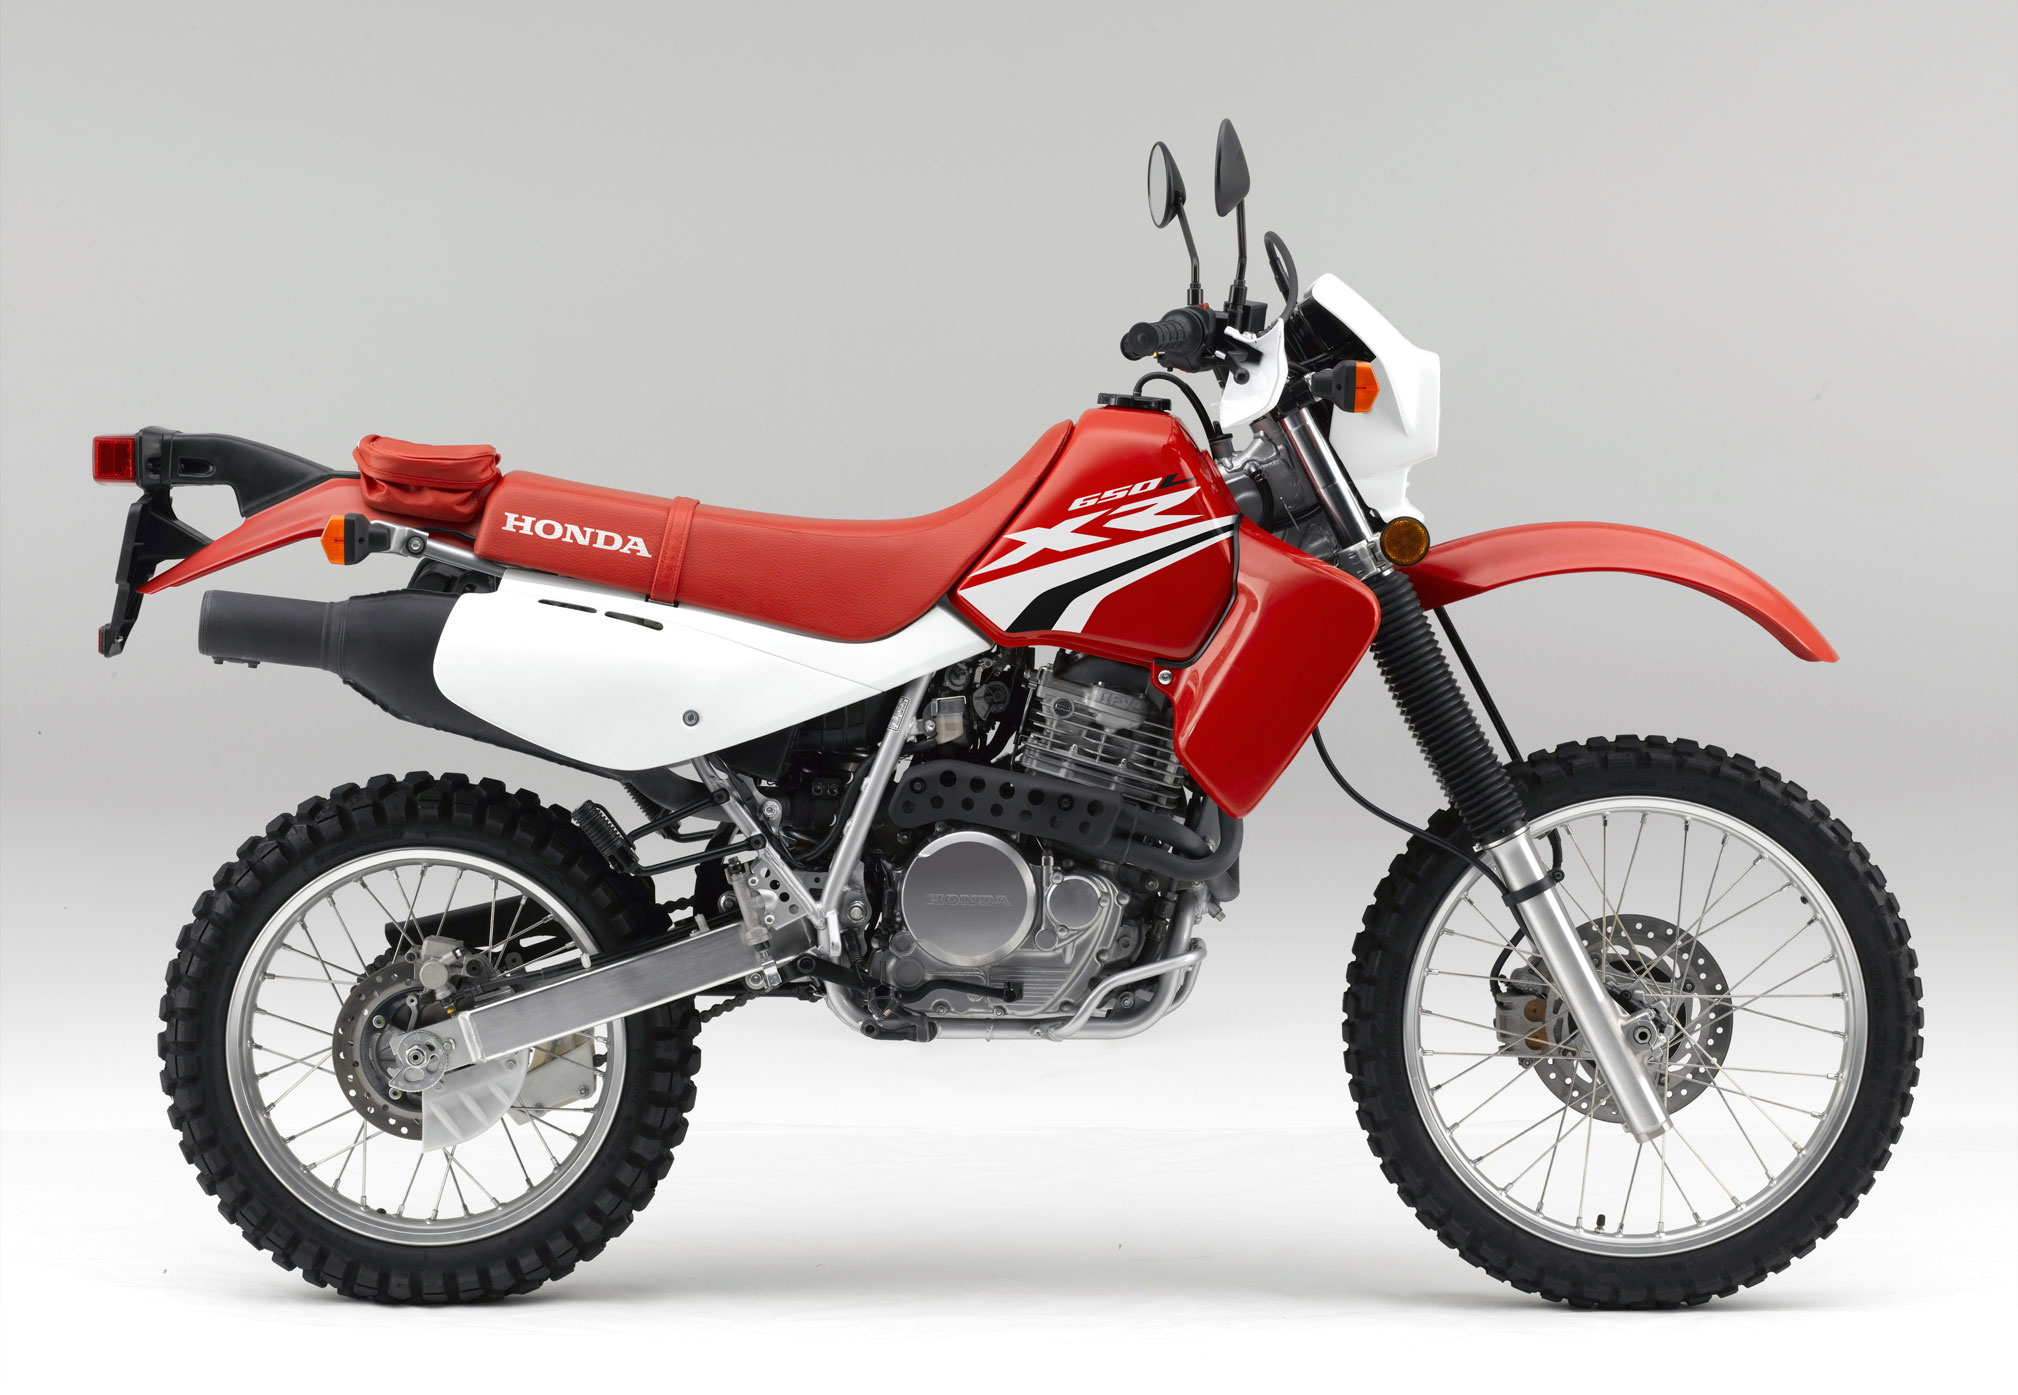 2018 honda xr650l review total motorcycle. Black Bedroom Furniture Sets. Home Design Ideas